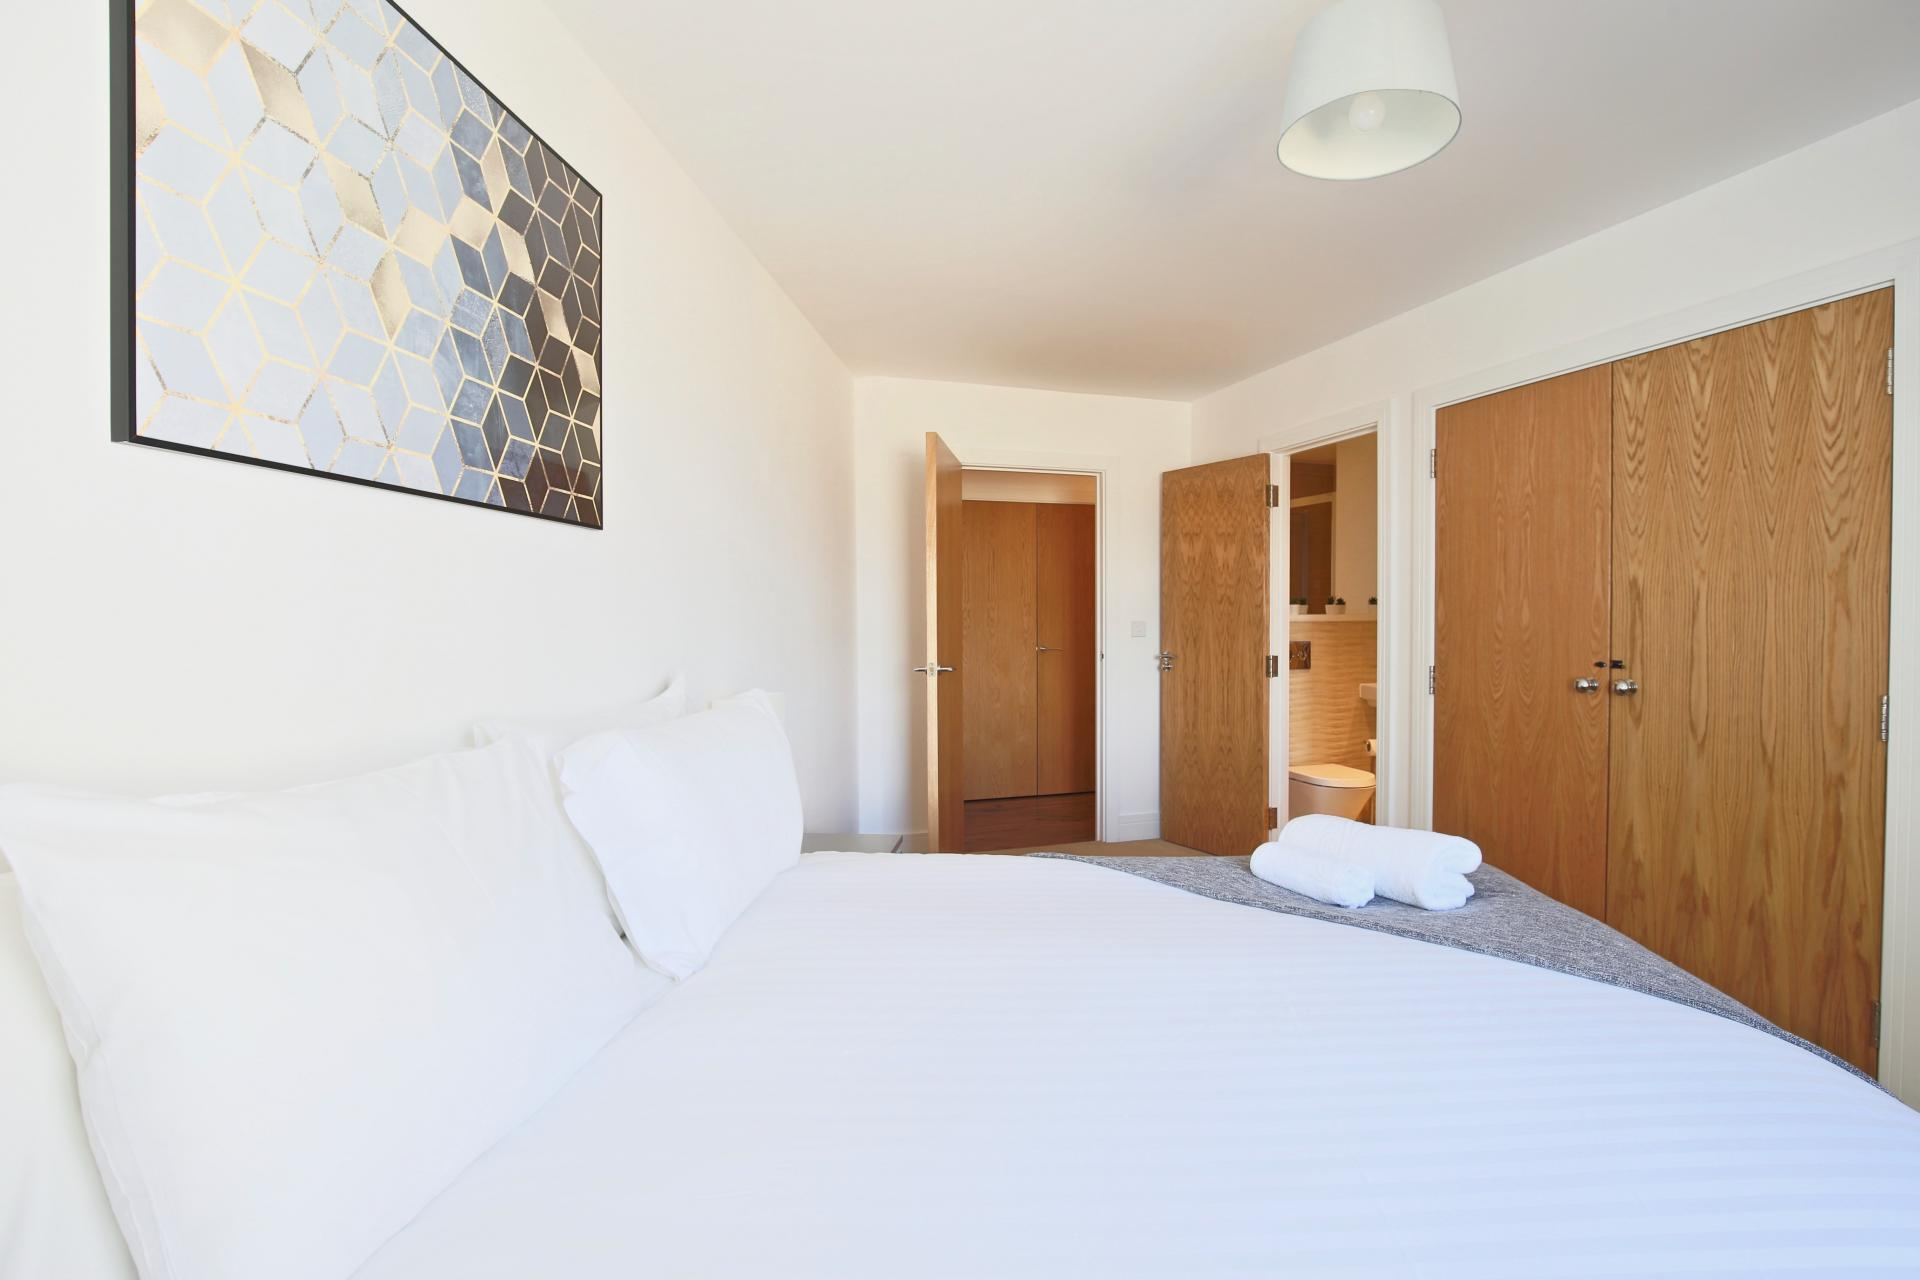 Cosy bed at Austen House, Centre, Guildford - Citybase Apartments